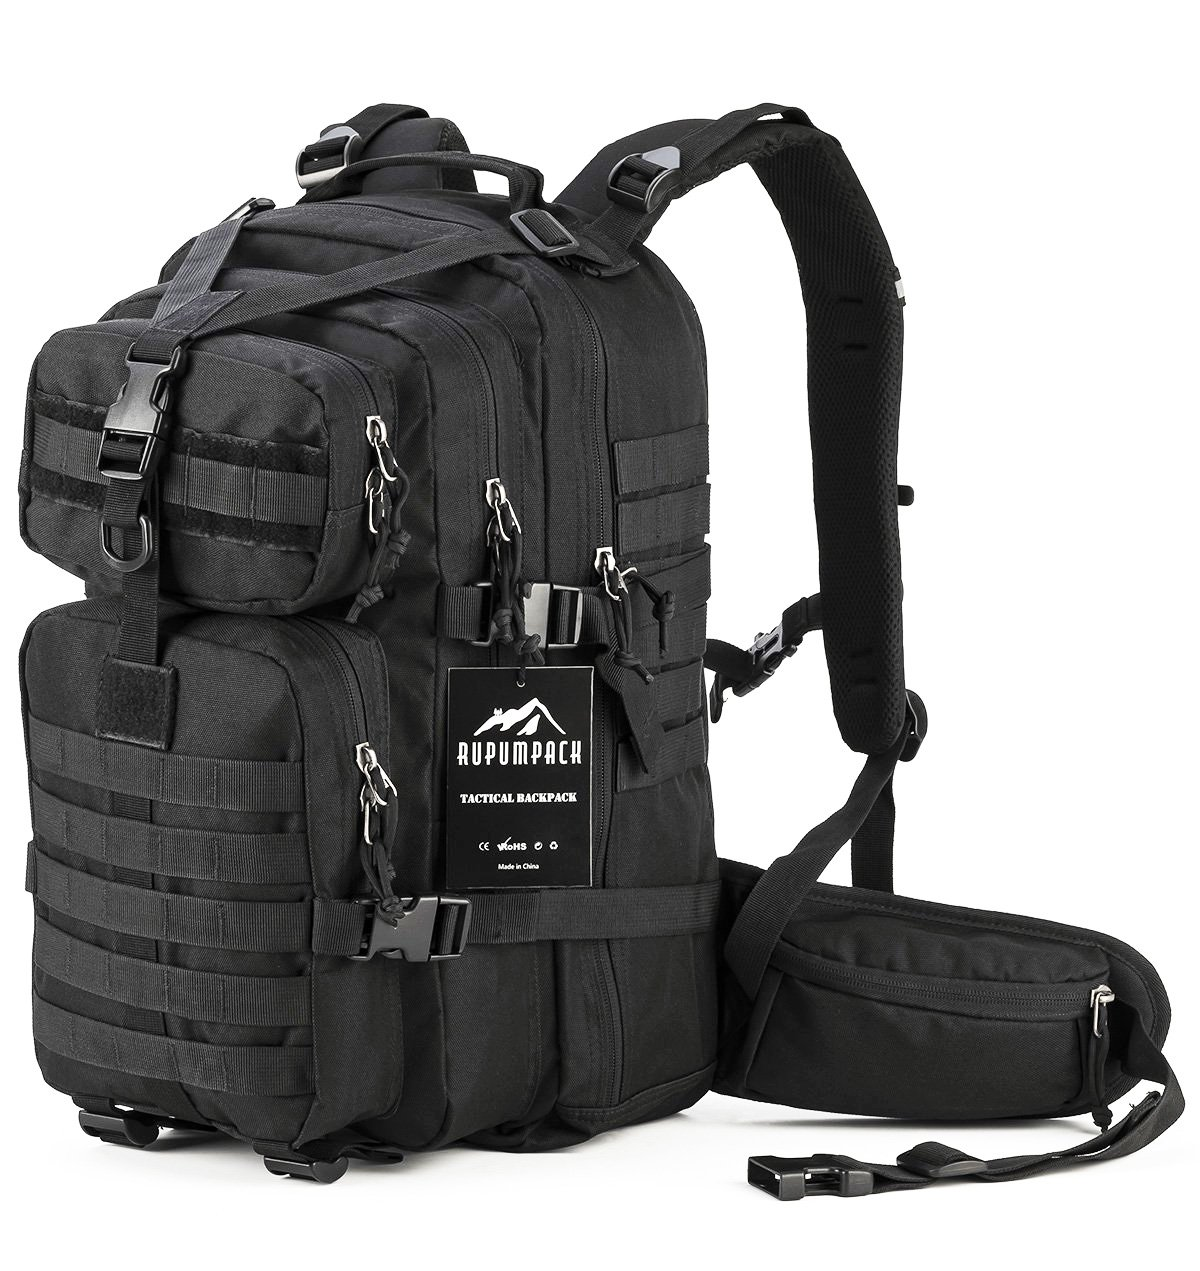 78699c895501 Amazon.com   RUPUMPACK Military Tactical Backpack Hydration Backpack ...